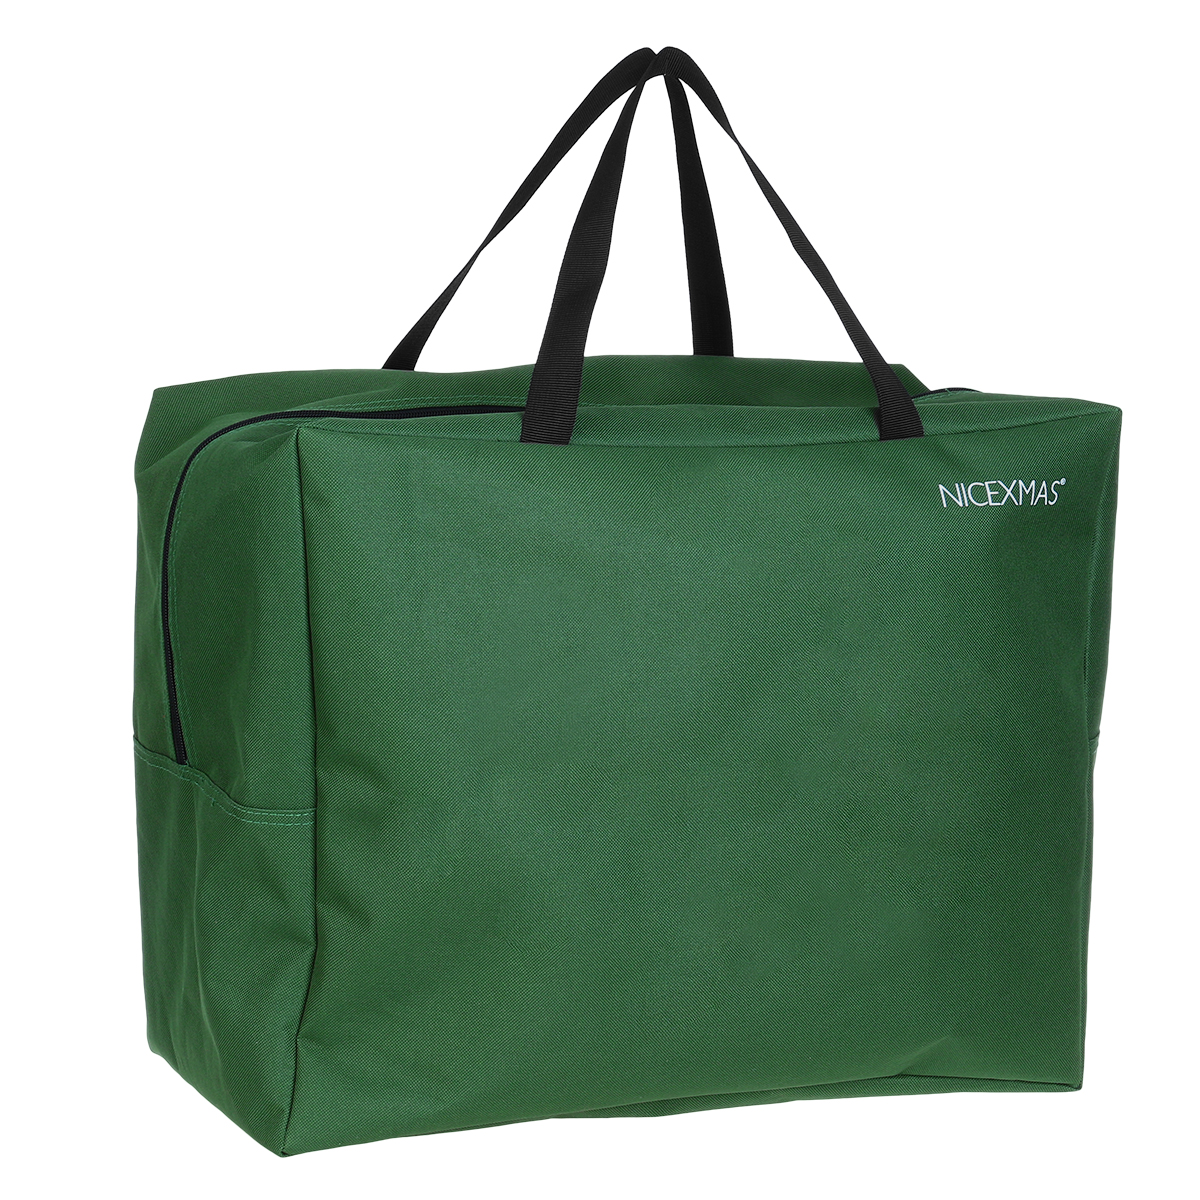 Awesome NICEXMAS Green Holiday Christmas Tree Storage Bag Roomy Zippered Bag For  Artificial Christmas Tree With Handles